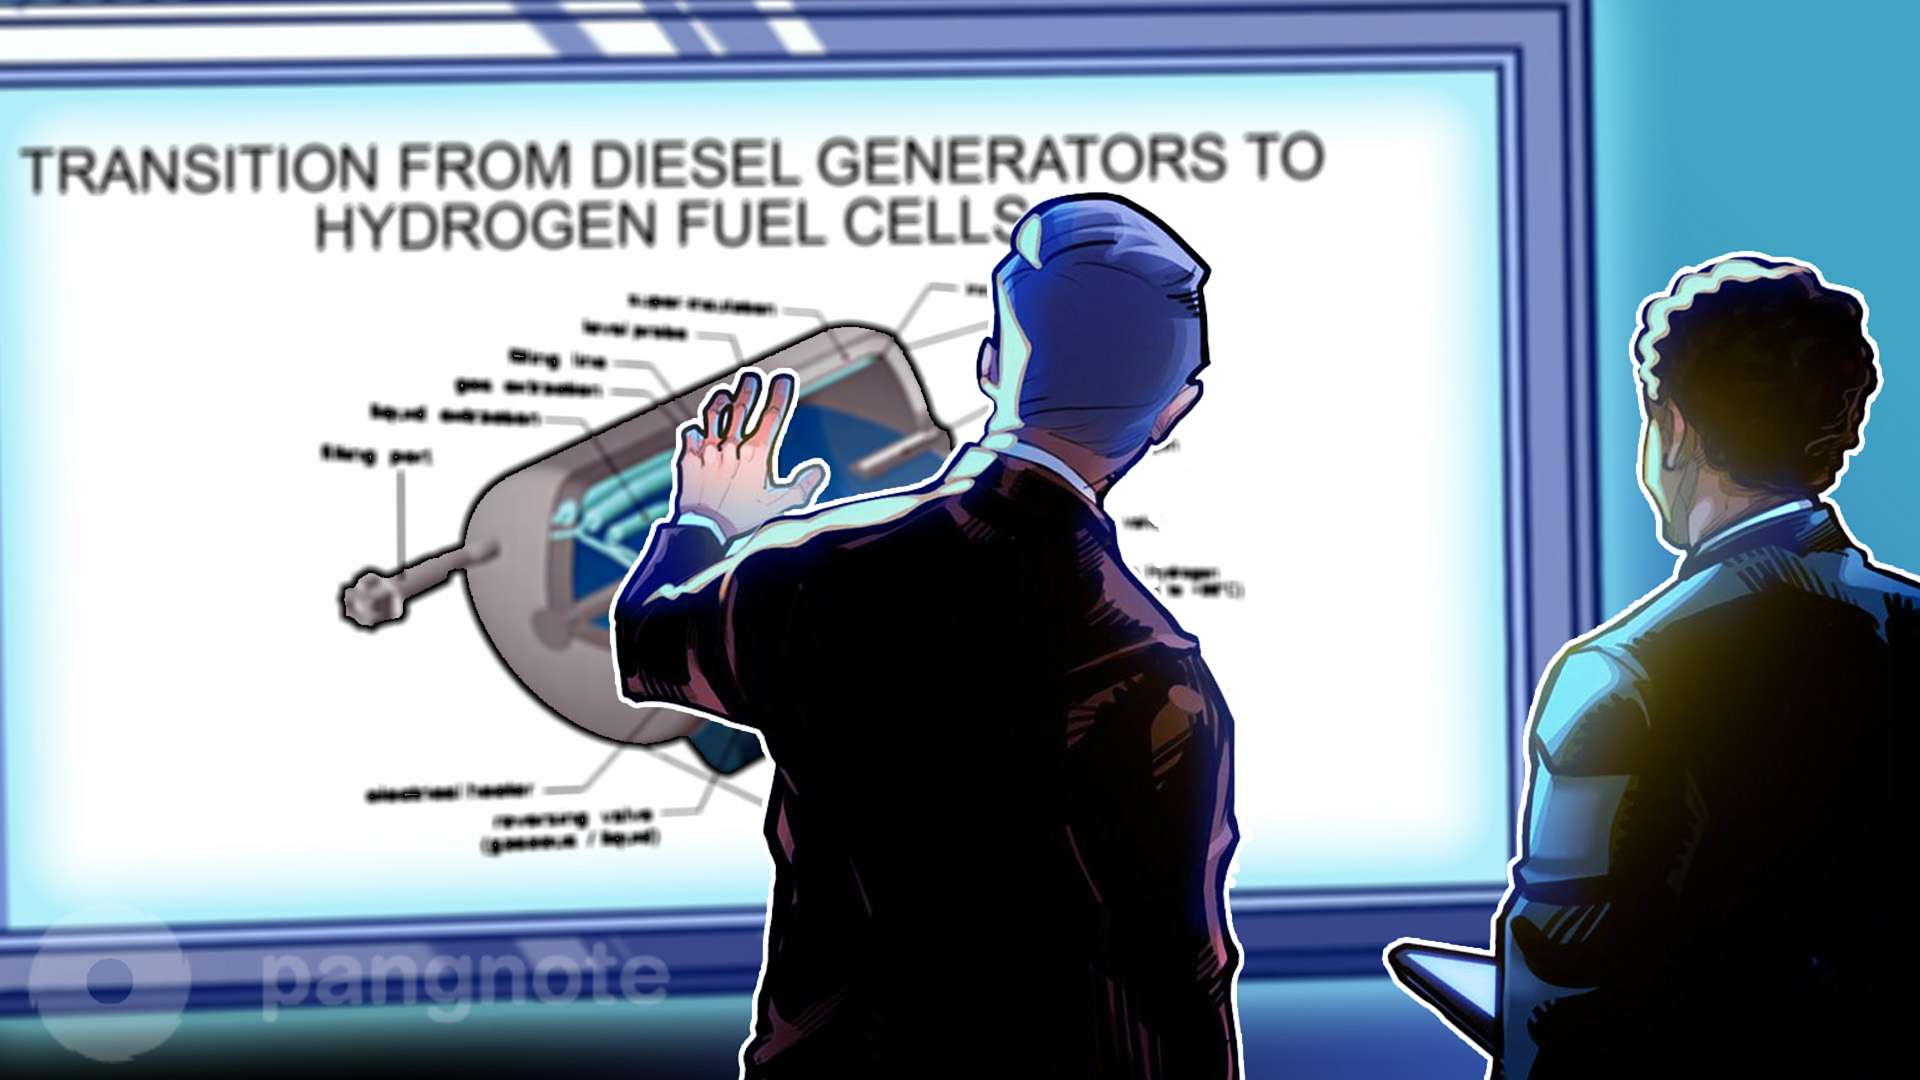 Prospects for Data Center Transition from Diesel Generators to Hydrogen Fuel Cells